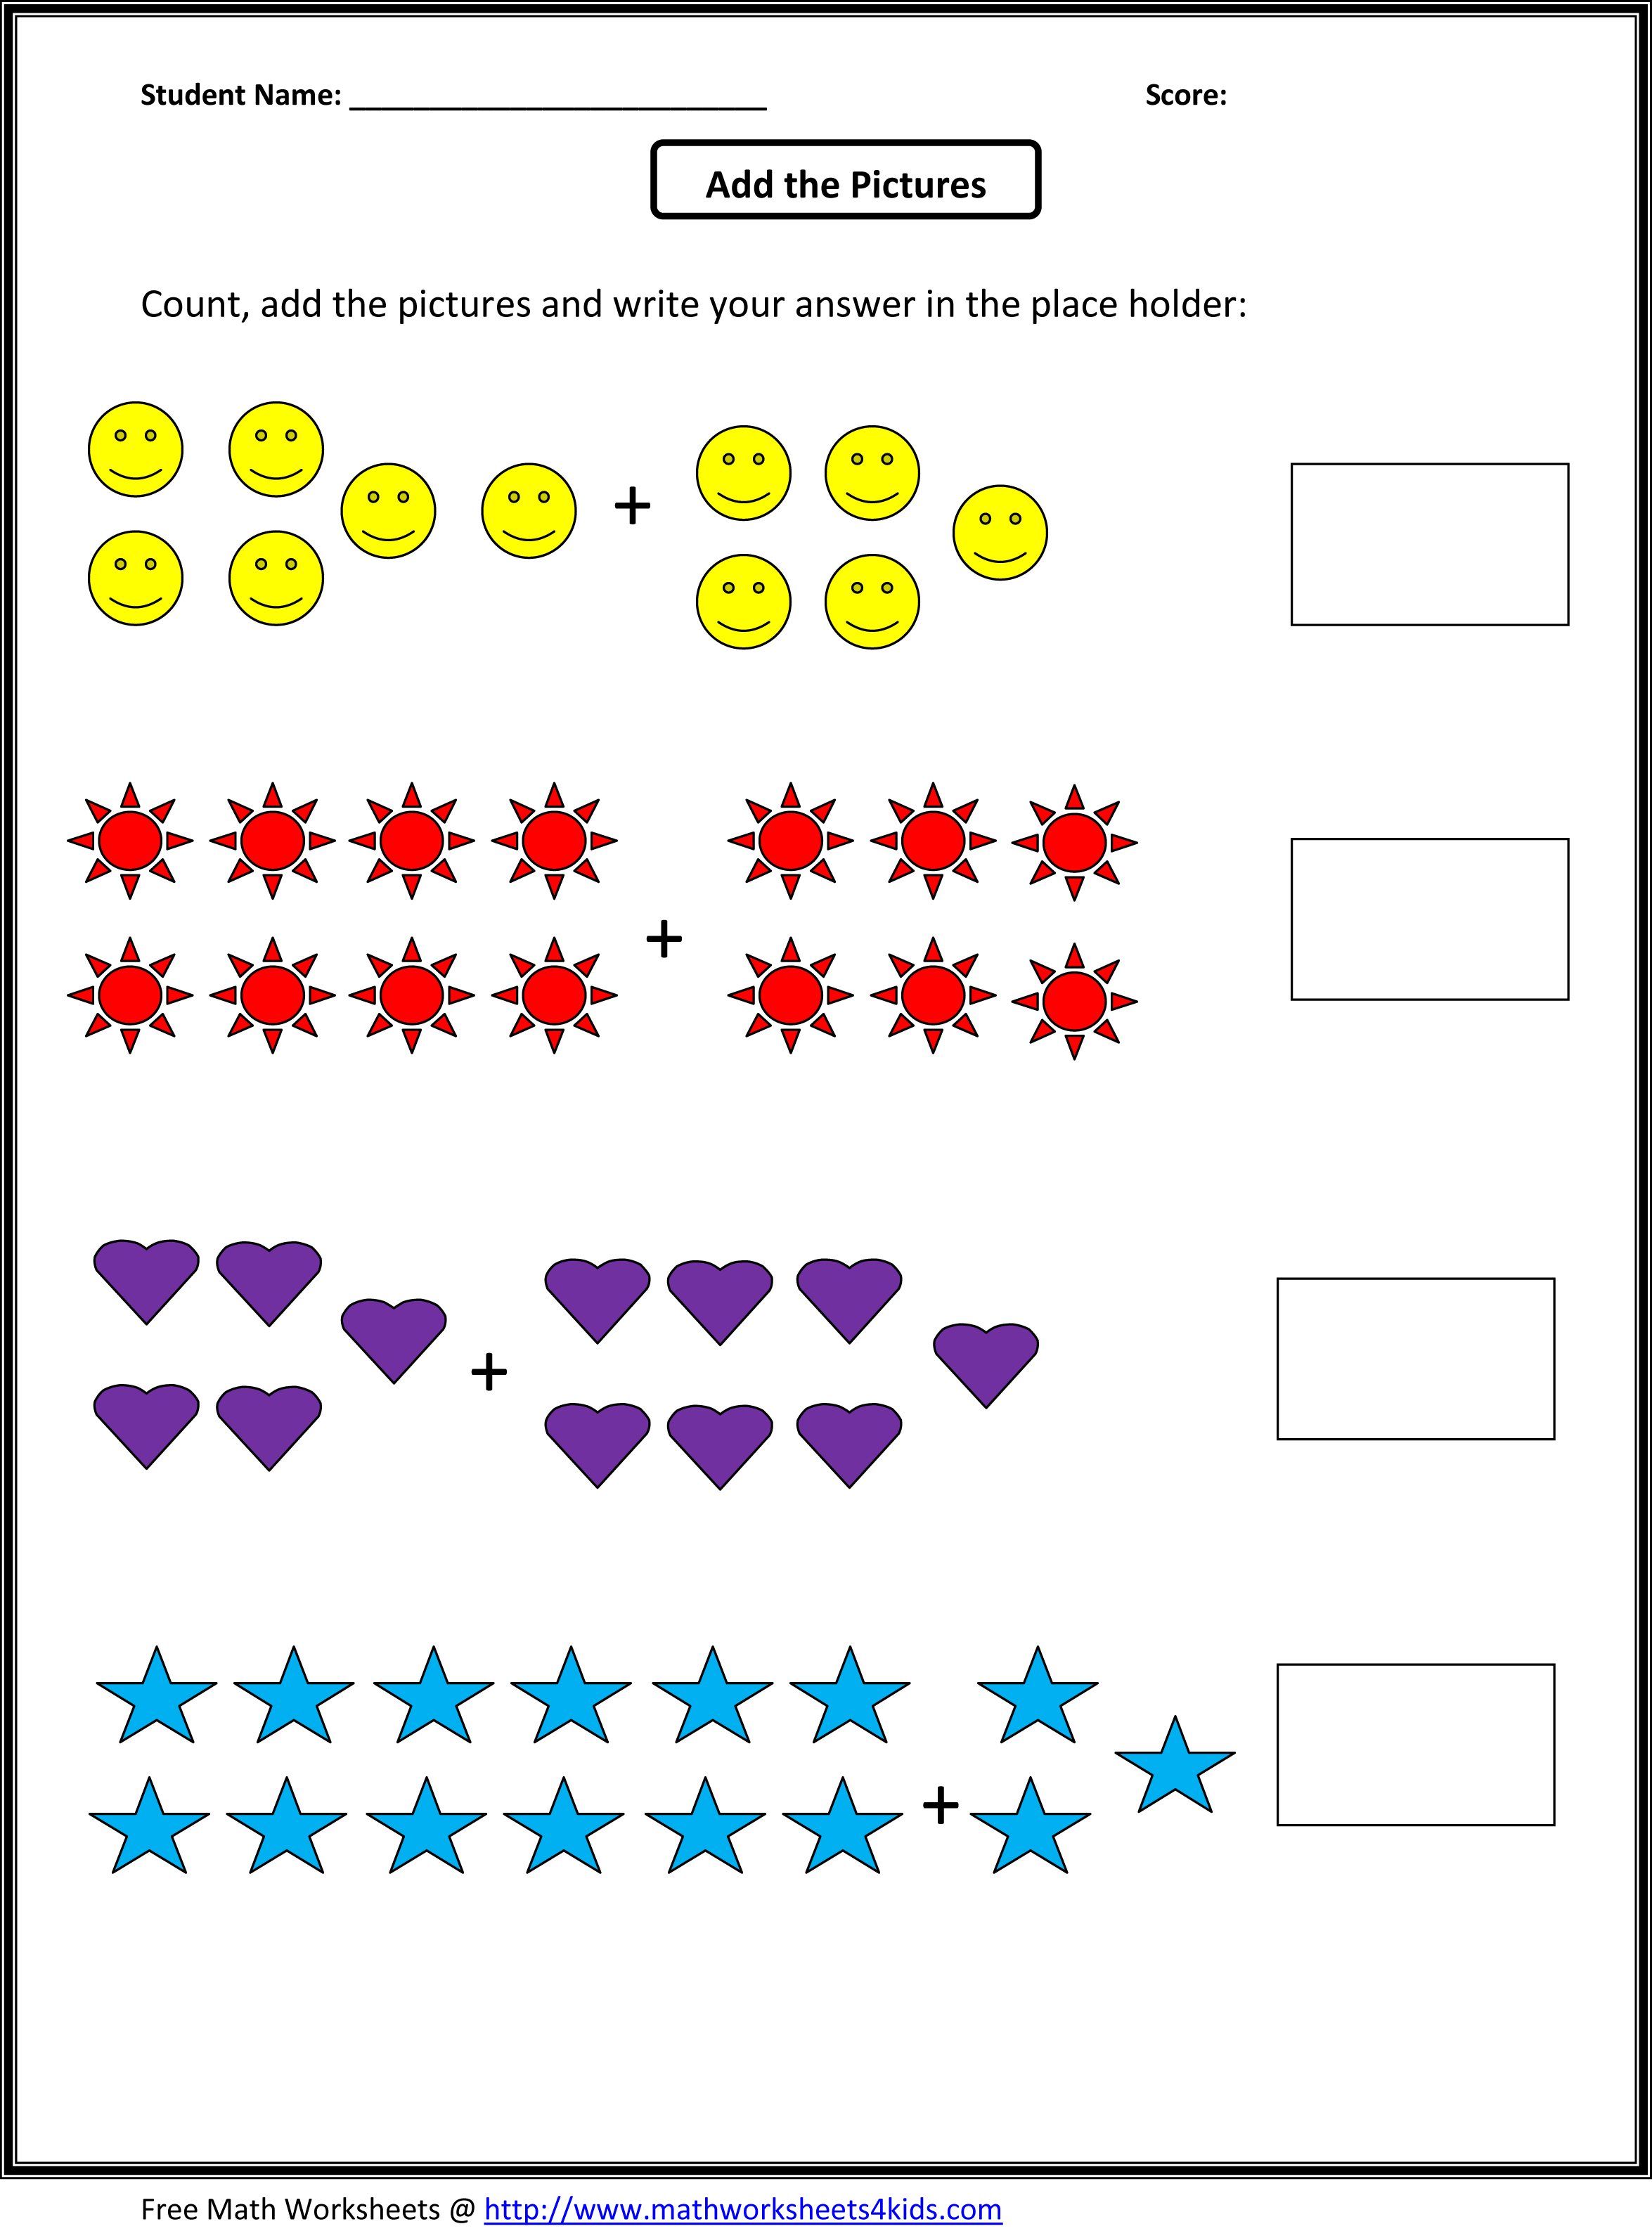 Proatmealus  Ravishing Grade  Maths Worksheet  Reocurent With Lovable Math Worksheets For St Grade Free  Reocurent With Delightful Greater Than Less Than Worksheets Second Grade Also Context Clue Worksheets Rd Grade In Addition Worksheets For Preschoolers Free And Maps And Scale Drawings Worksheet As Well As Reduce Fractions Worksheets Additionally Abc Worksheets For Preschoolers From Reocurentcom With Proatmealus  Lovable Grade  Maths Worksheet  Reocurent With Delightful Math Worksheets For St Grade Free  Reocurent And Ravishing Greater Than Less Than Worksheets Second Grade Also Context Clue Worksheets Rd Grade In Addition Worksheets For Preschoolers Free From Reocurentcom